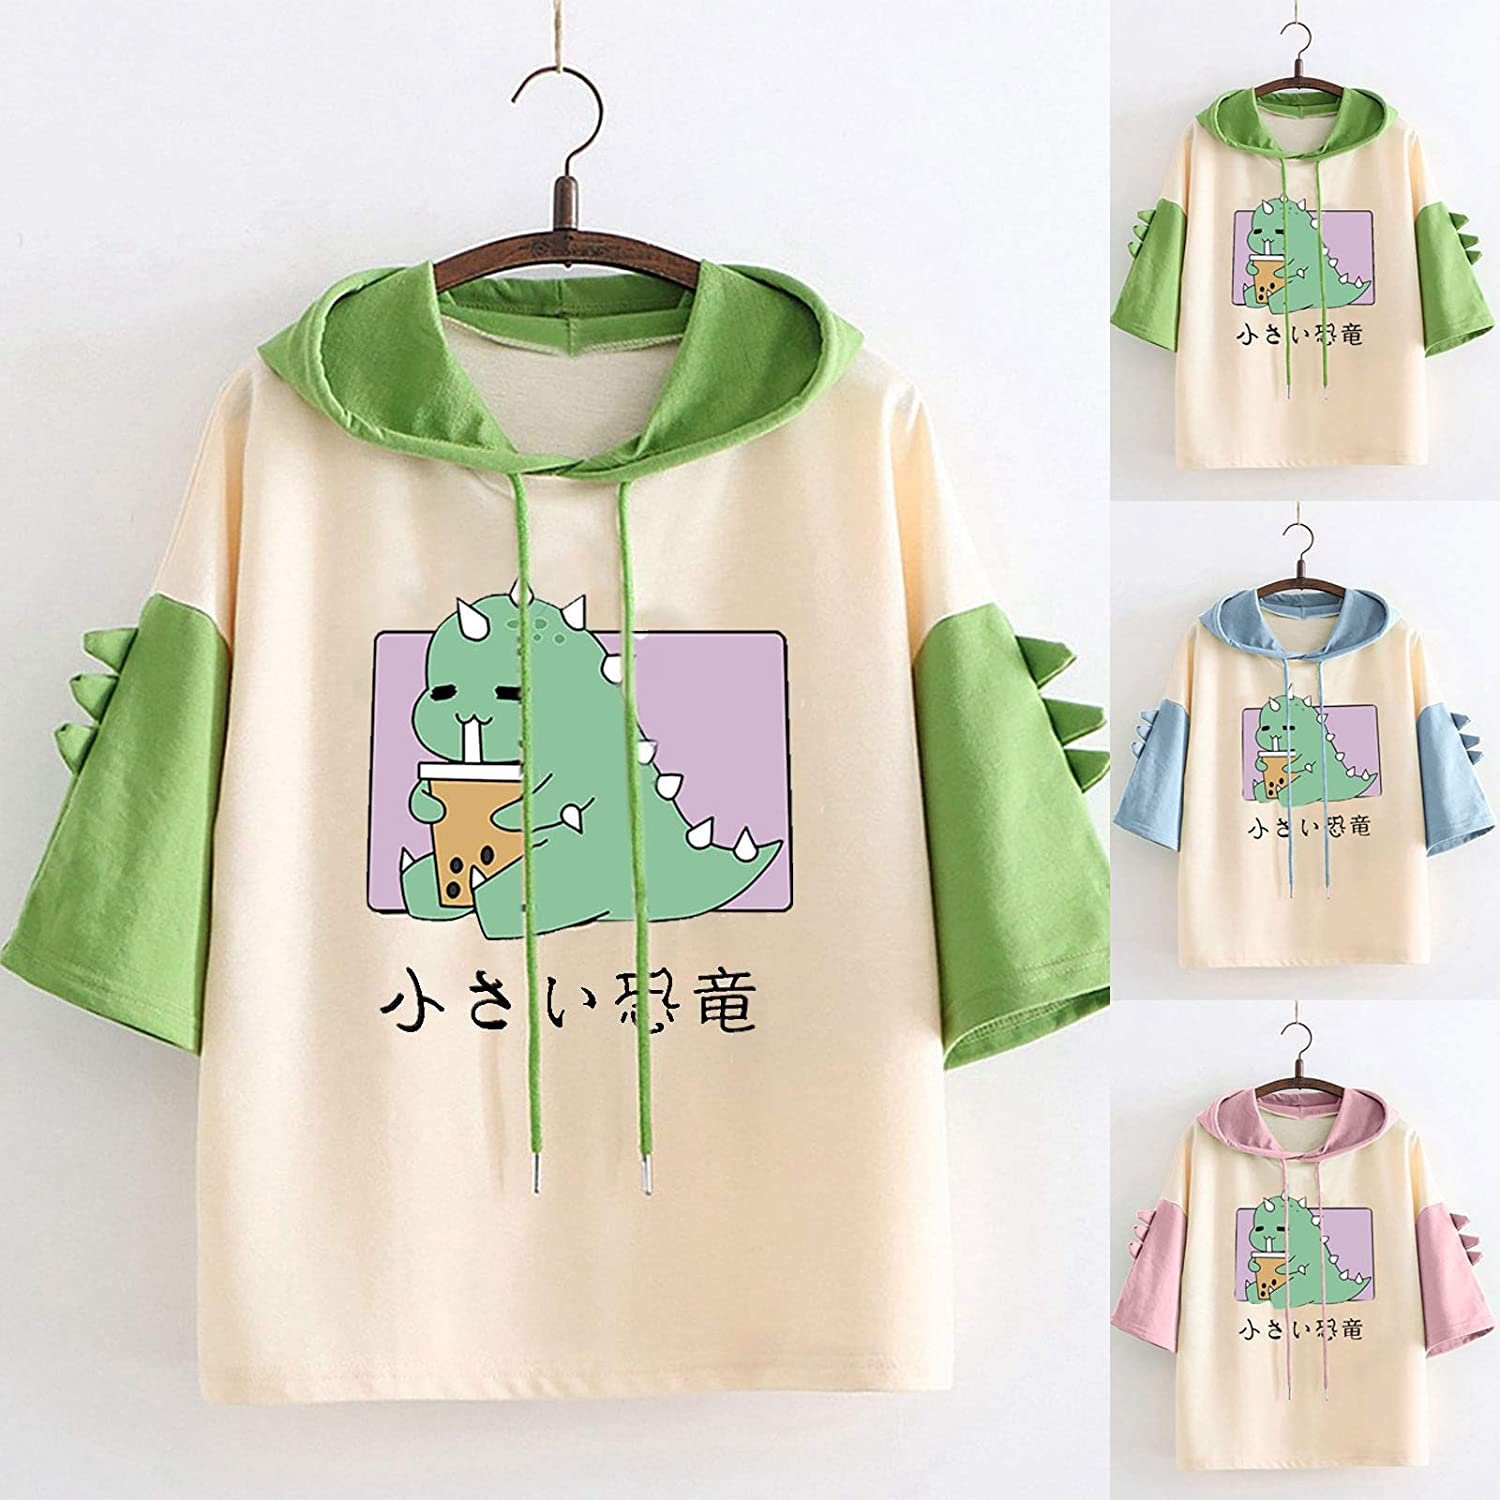 Hoodie Dinosaur Tops for Women Base Short Sleeve T-Shirts Casual Graphic Tees Color Block Blouses Classic Pullover